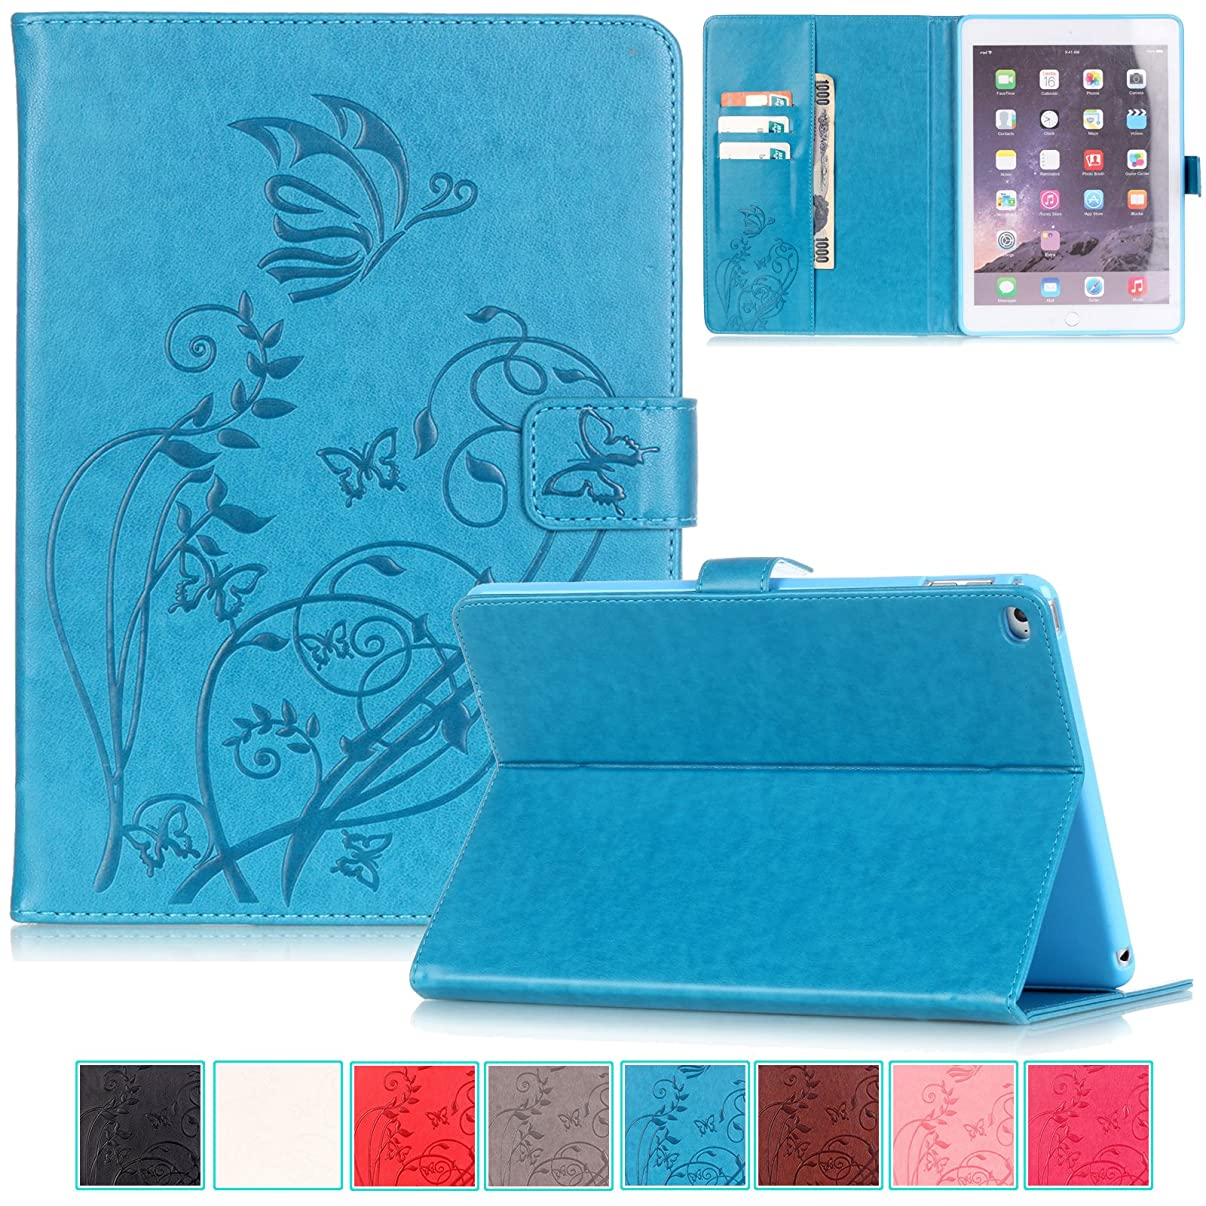 iPad Air 2 Case-UUcovers Embossed Synthetic Leather Butterfly Pure Color SeriesMagnetic ClosureCards/Cash Holder Cover for Apple iPad Air 2 (iPad 6) 9.7 Inch iOS 8 Tablet-Blue